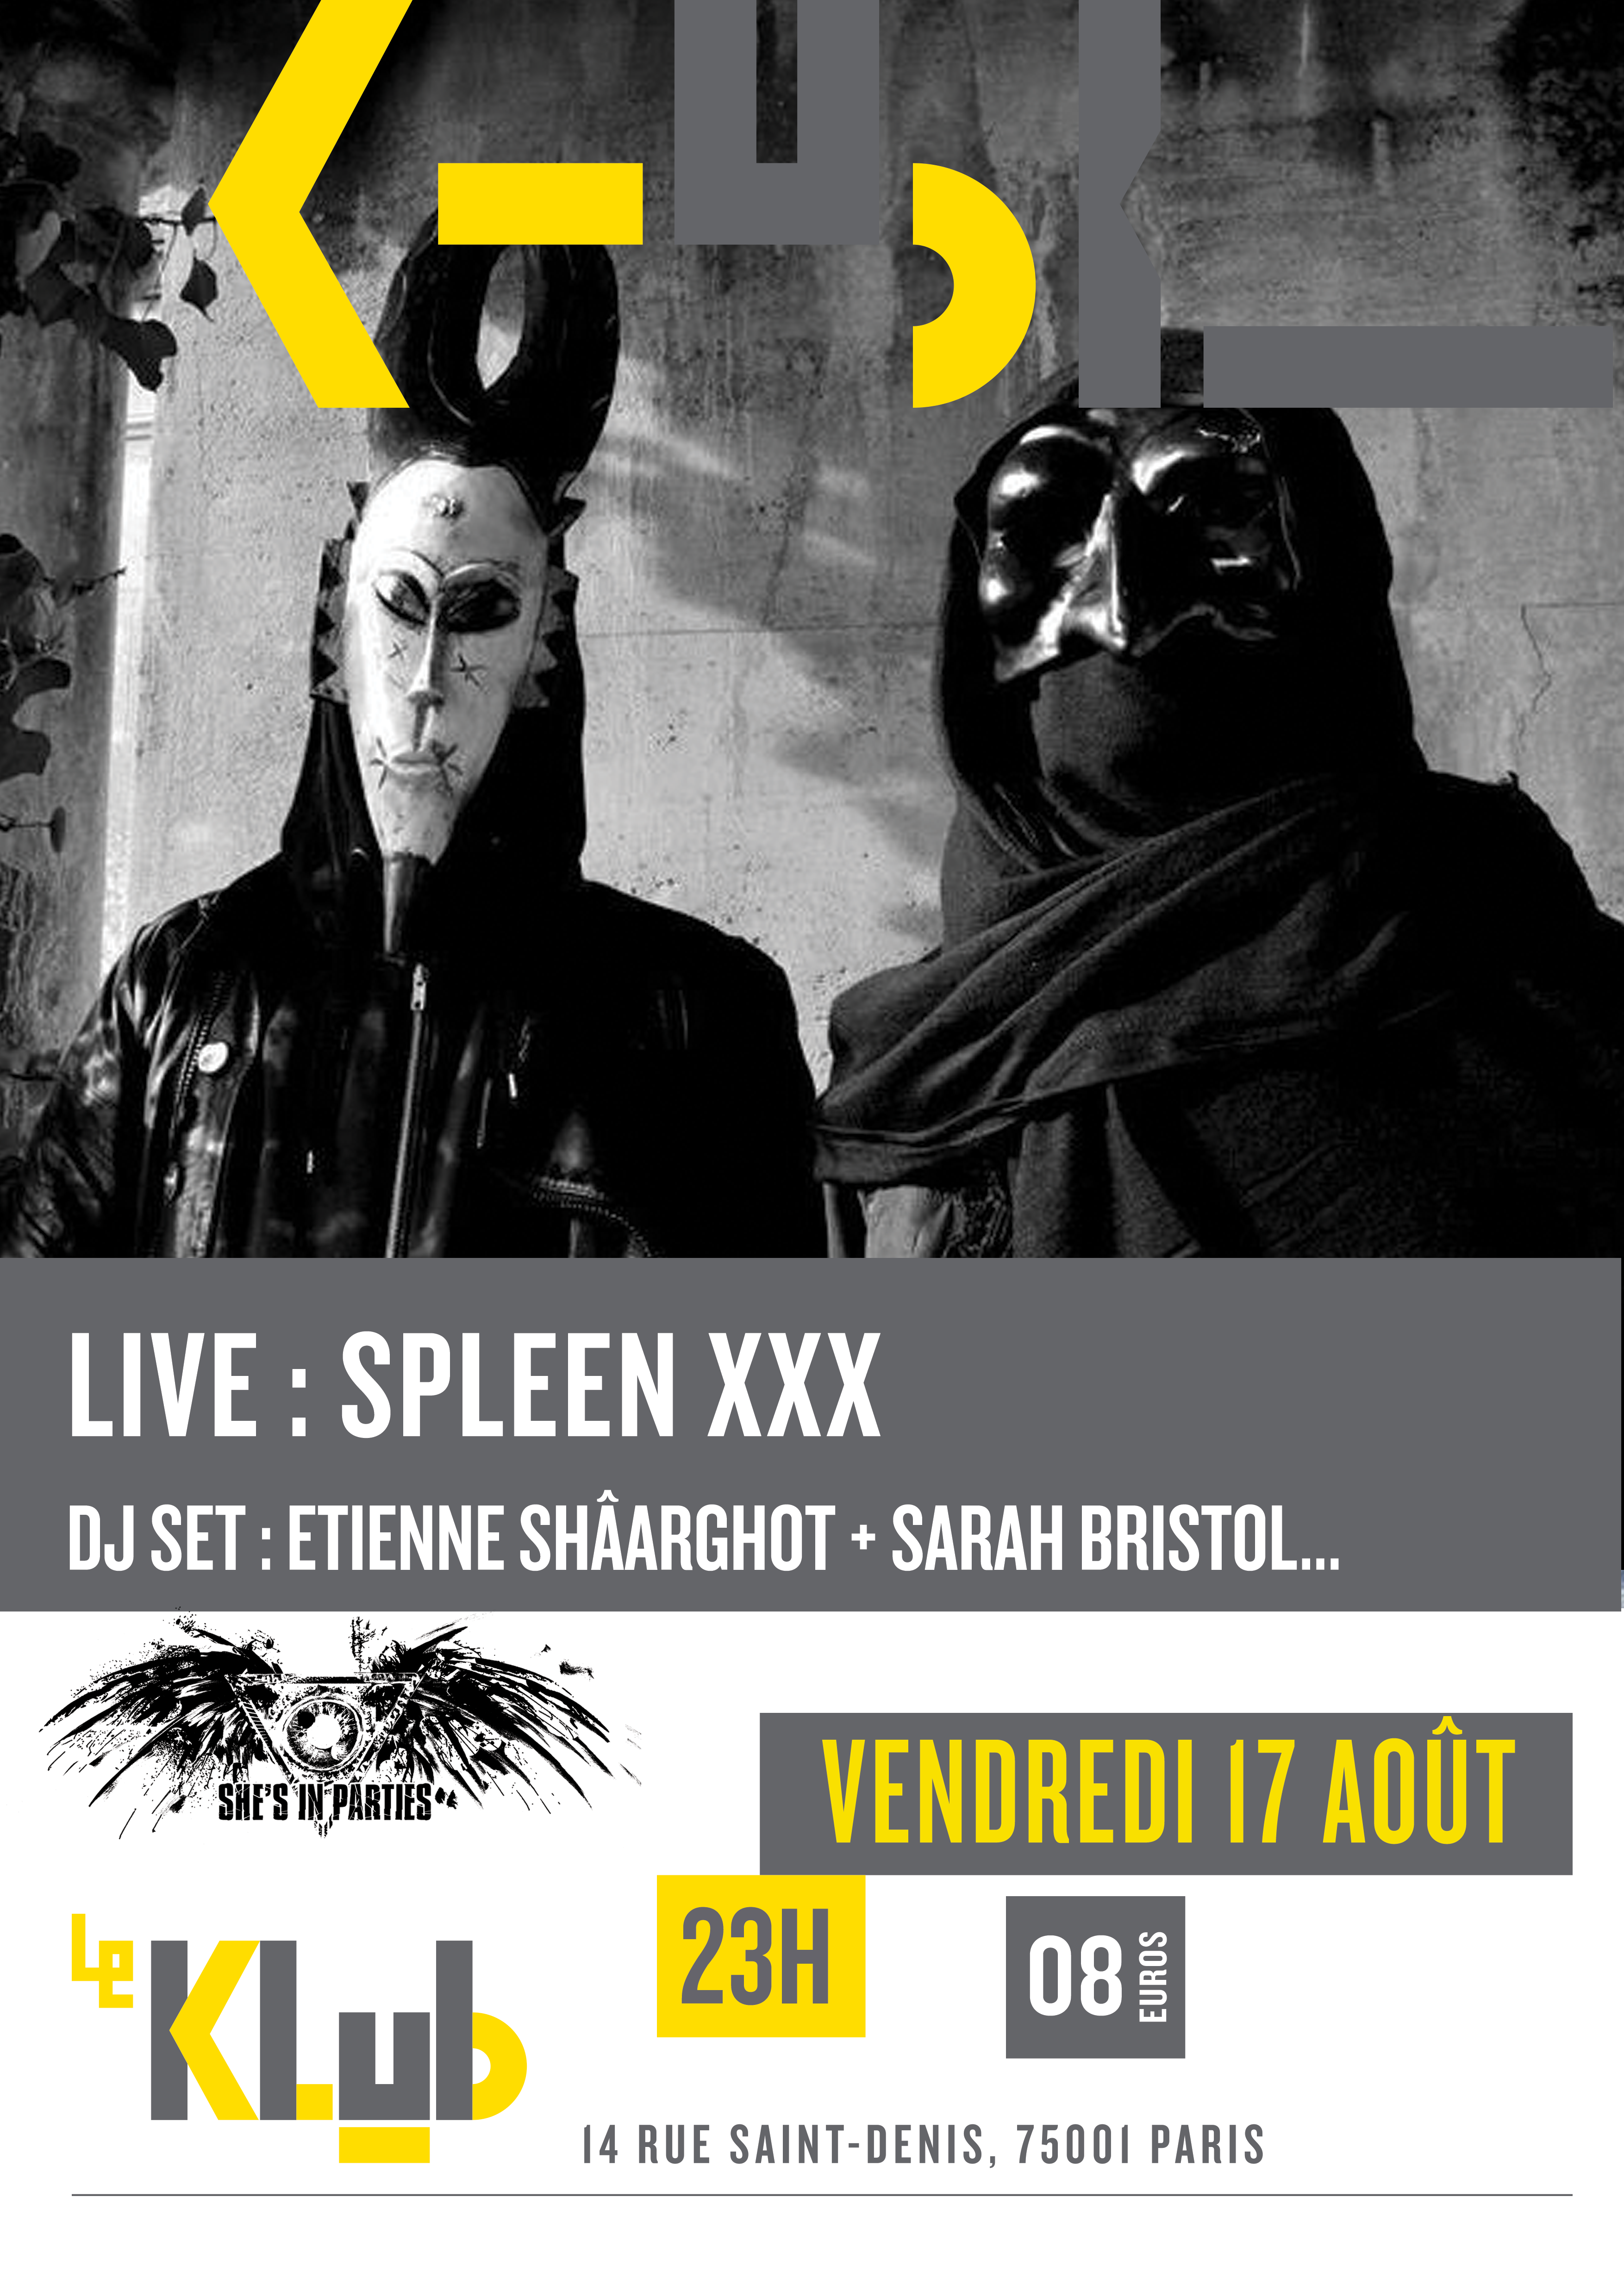 SUMMER SHE'S IN PARTIES #4 ■ 17.08 ■ LE KLUB